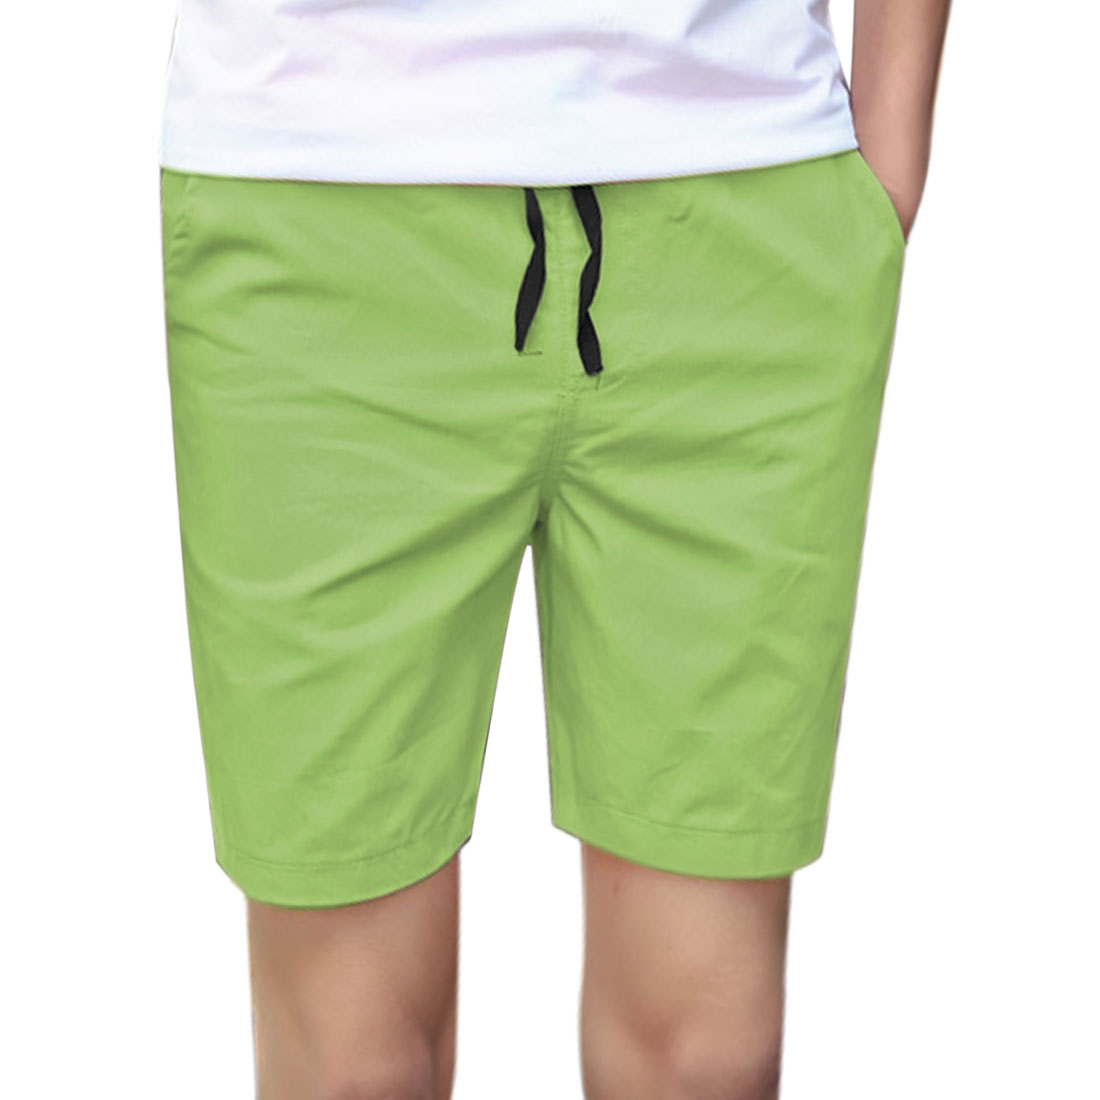 Azzuro Men's Drawstring Elastic Waist Straight Leg Shorts Green (Size S / W30)